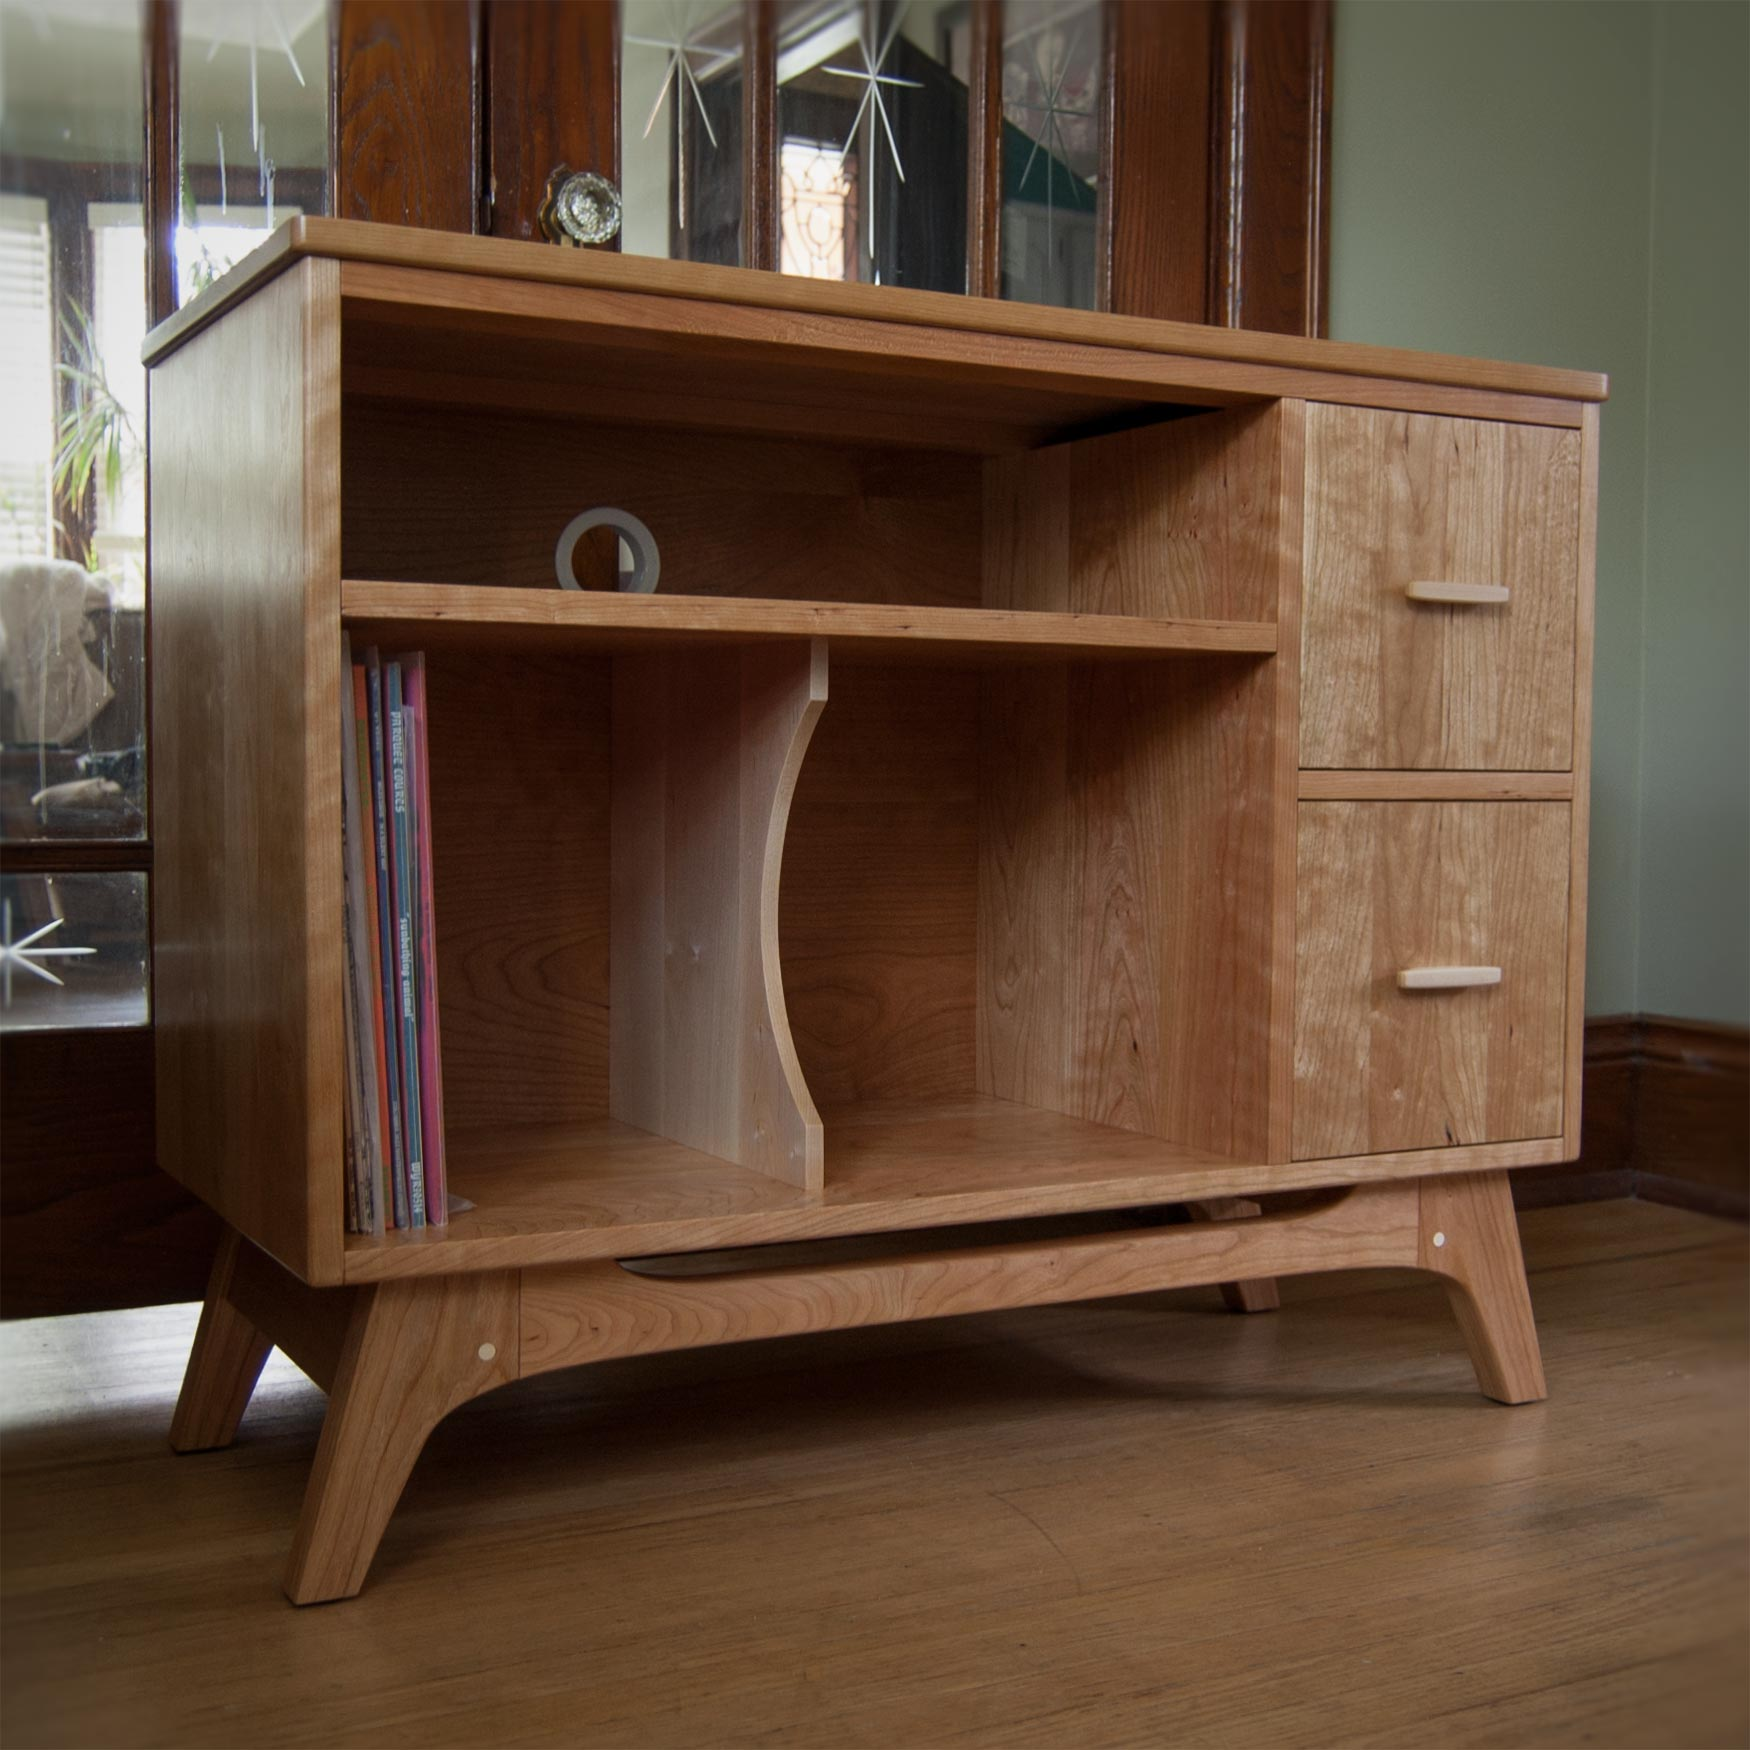 Cherry record cabinet with drawers for 45s